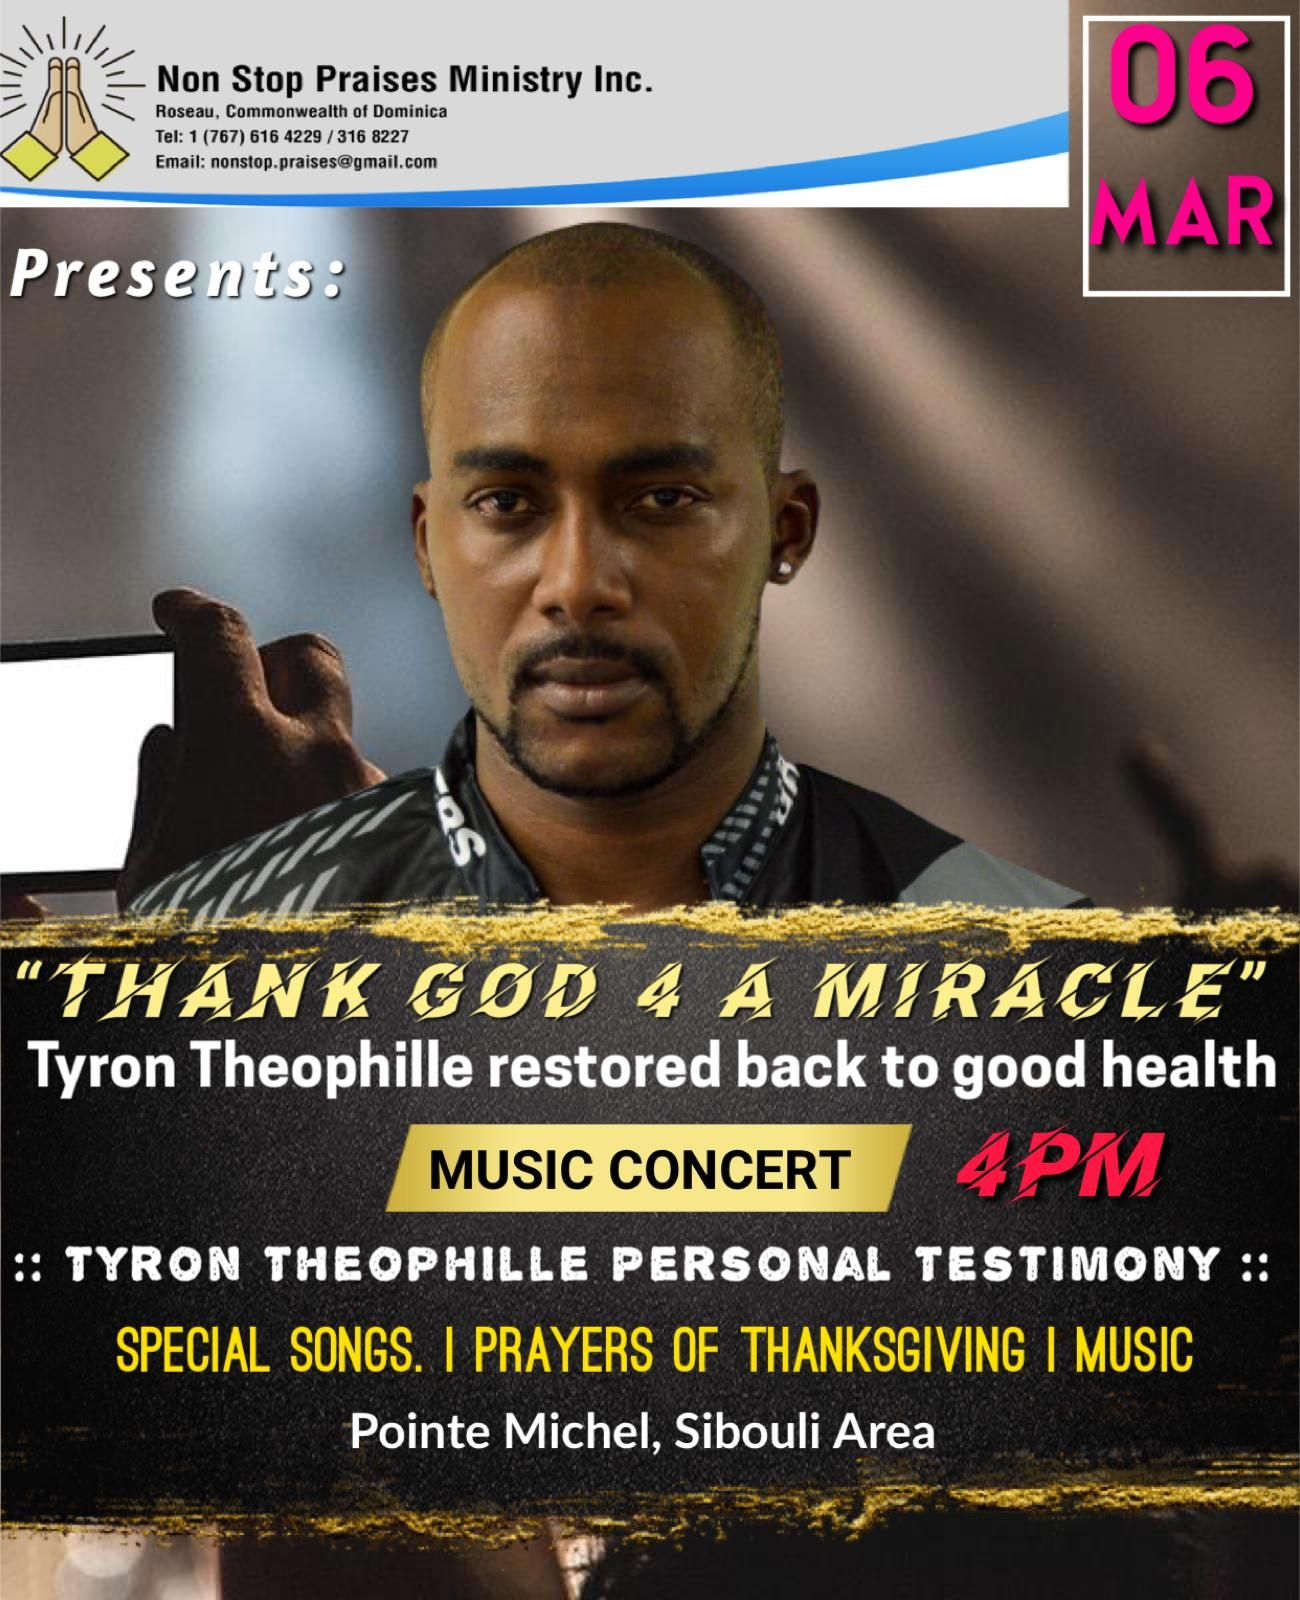 Nonstop Praises Ministry Inc presents - Thank God for a Miracle - Tyron Theophile restored back to good health, 6th March 2021